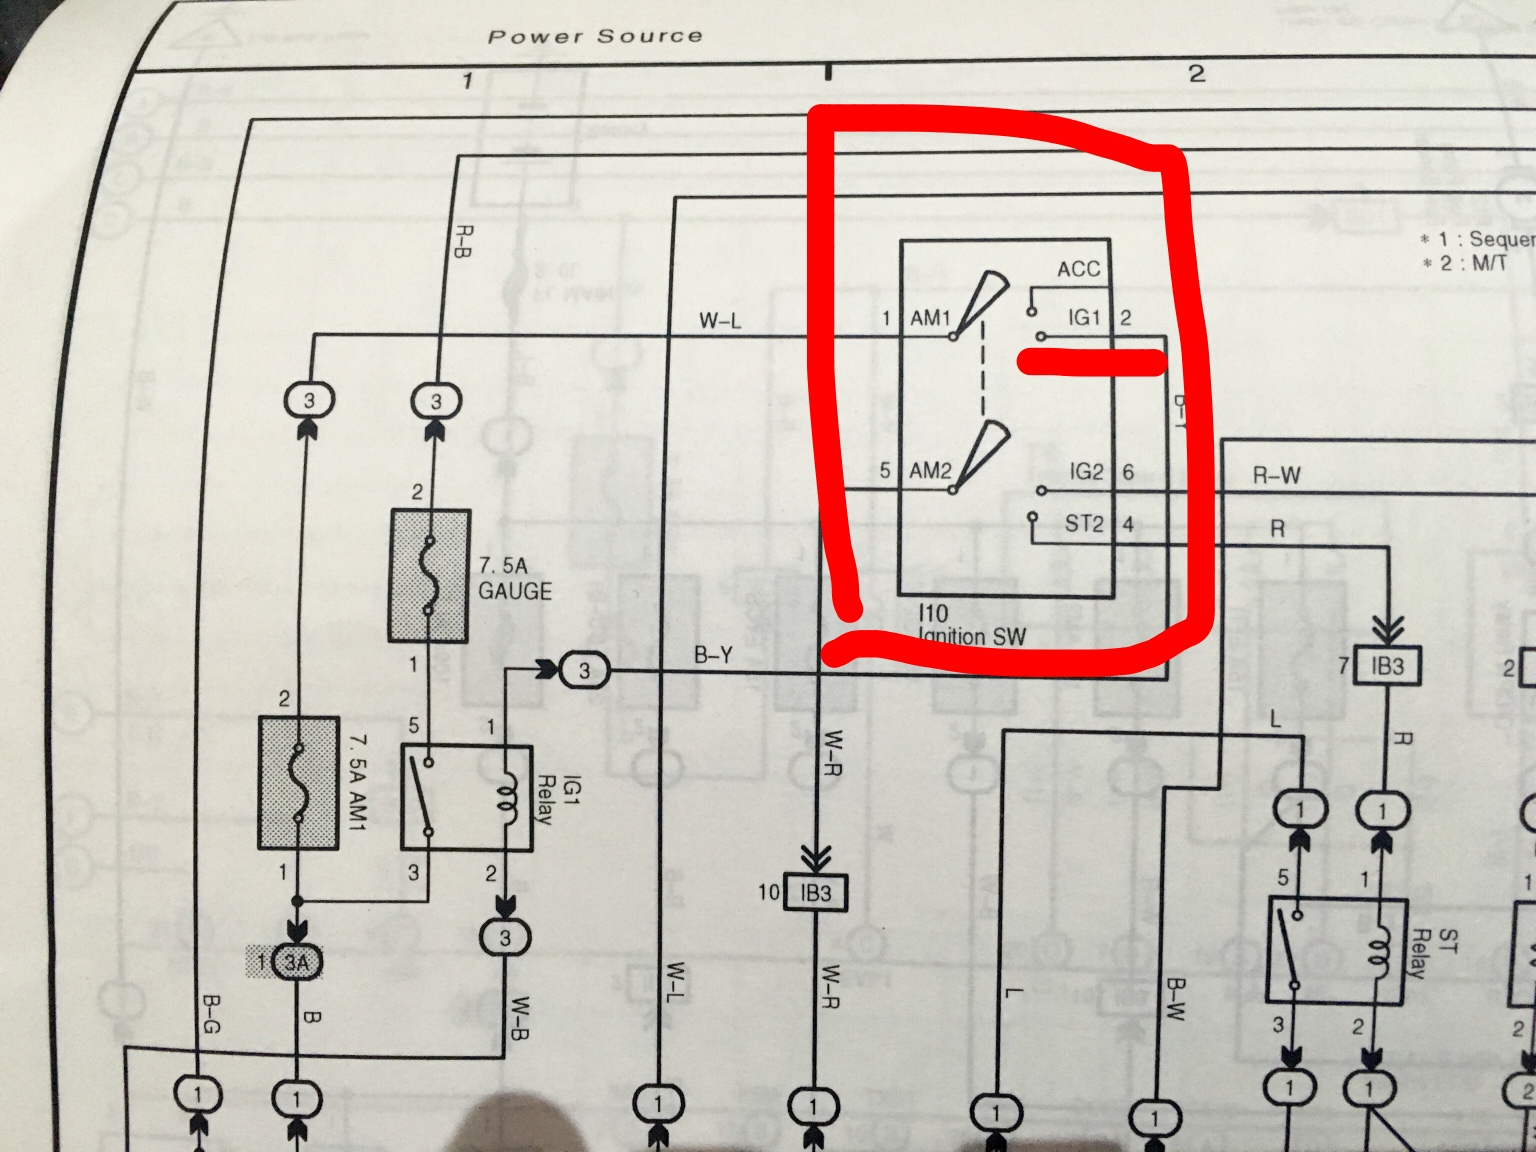 Fia Master Switch Kill Wiring Peugeot 106 Ignition The Contact Block Highlighted In My Previous Pictures Is One Below On Diagram Wire No2 Underlined Red Black Yellow